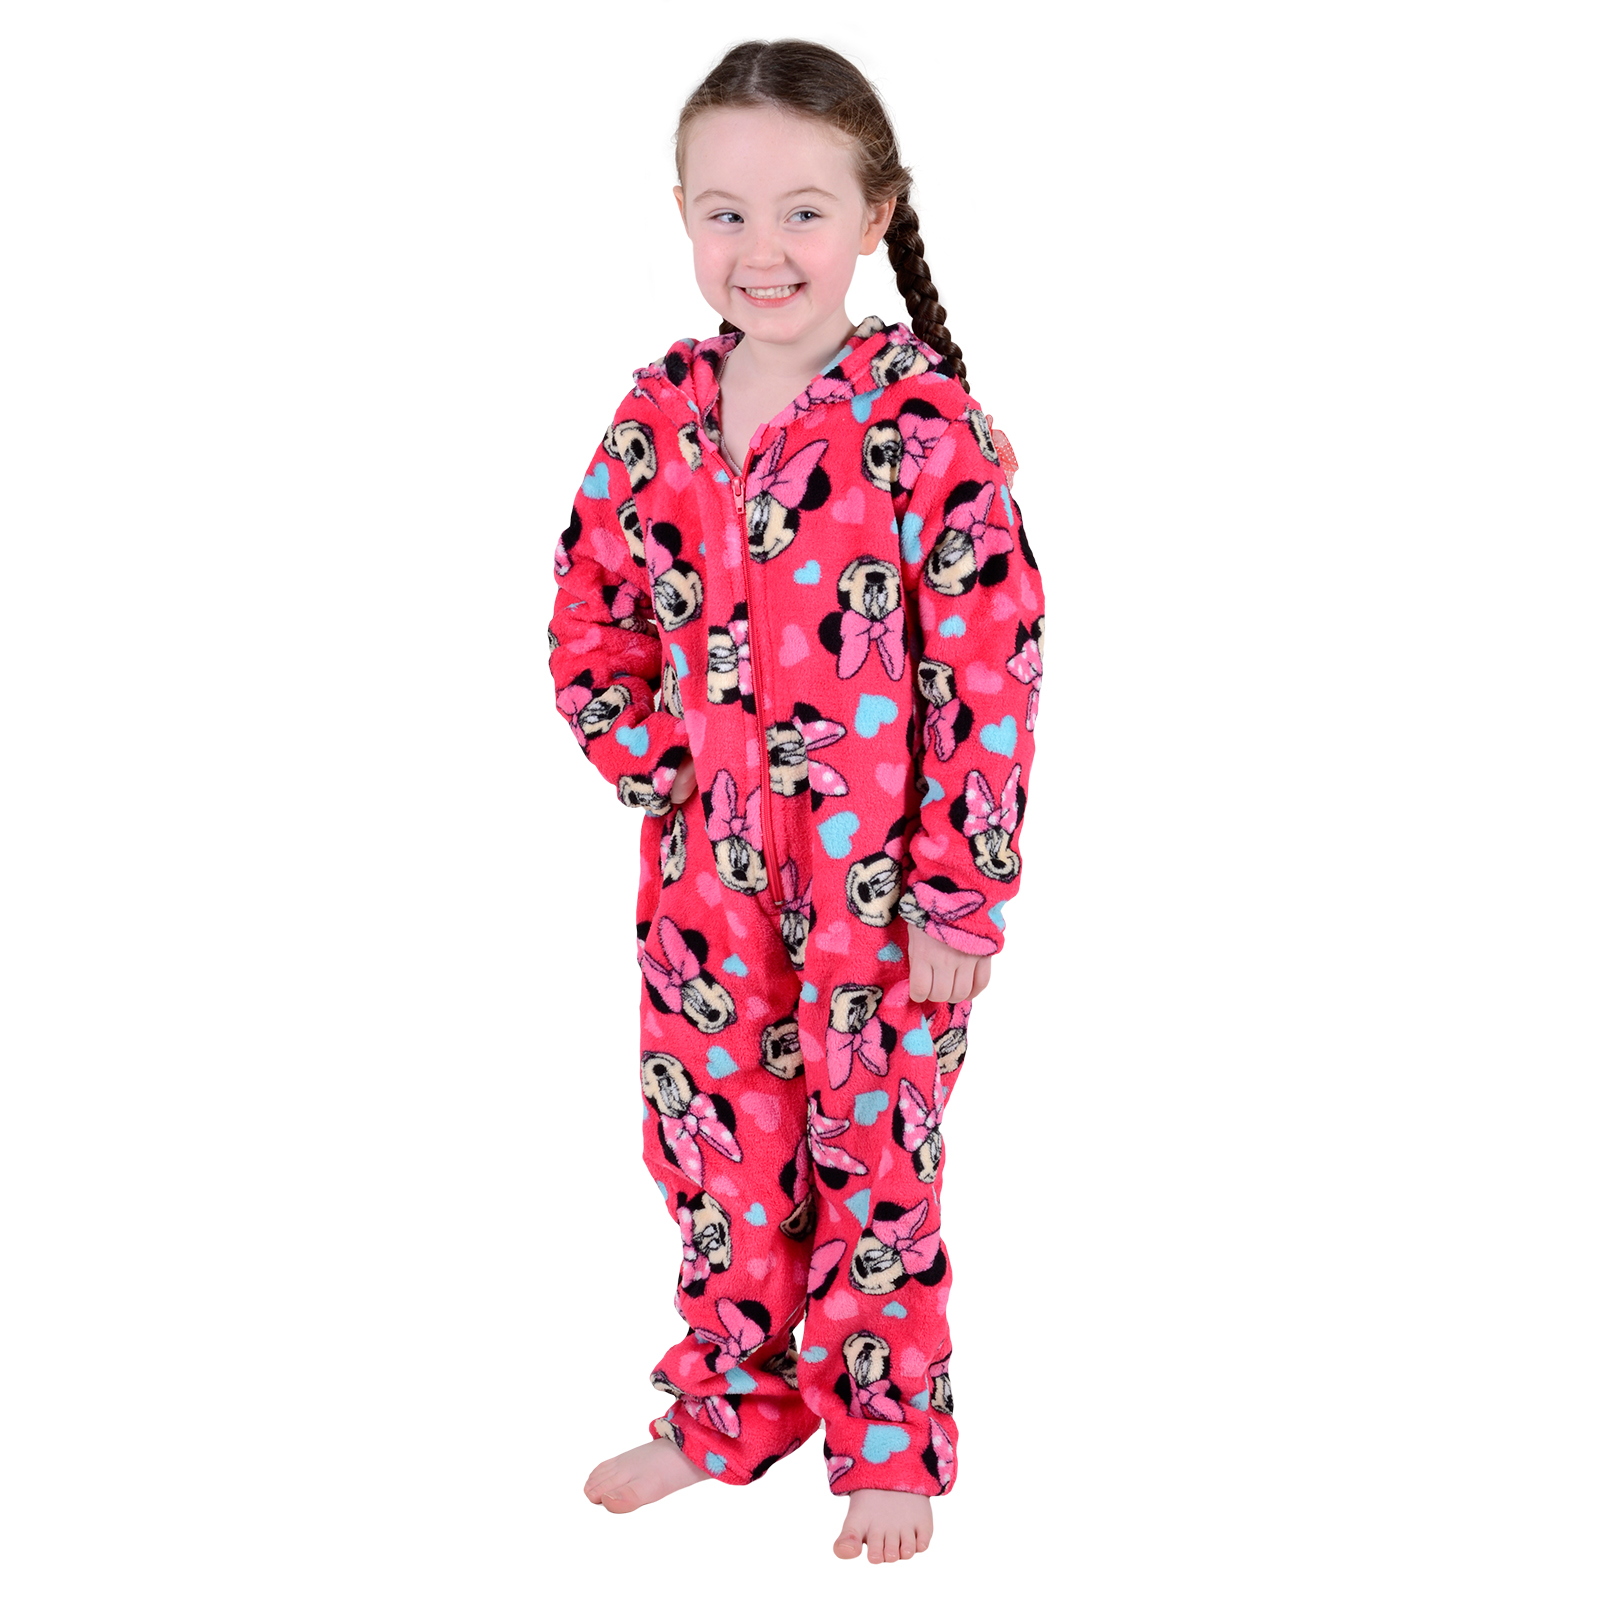 Shop for boy's onesies at downloadsolutionspa5tr.gq Next day delivery and free returns available. s of products online. Buy onesies for boys now!